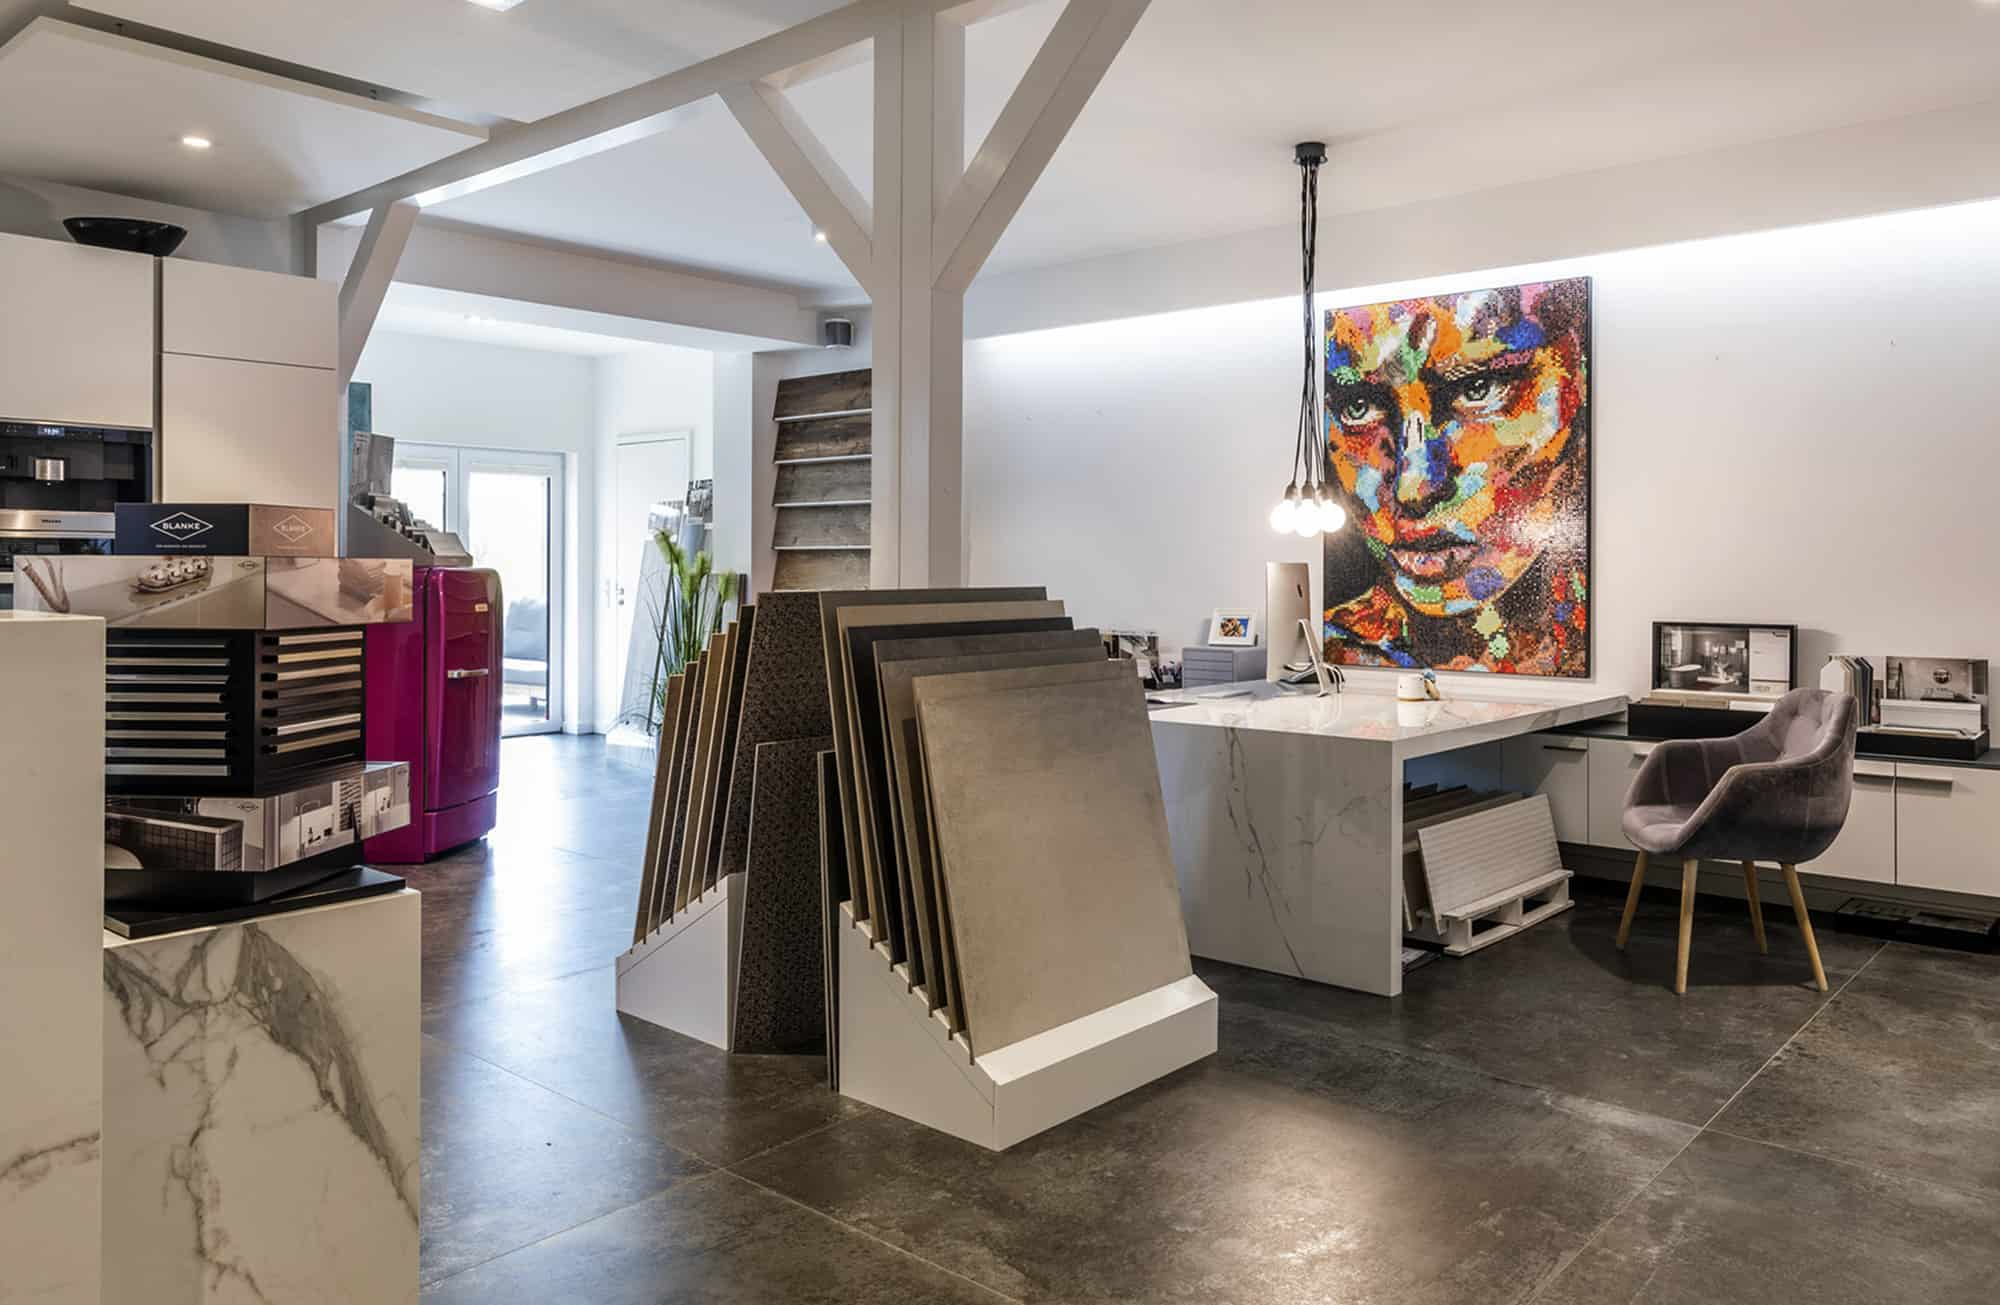 Fliesen_Design_Jank-Showroom-Fliesenleger